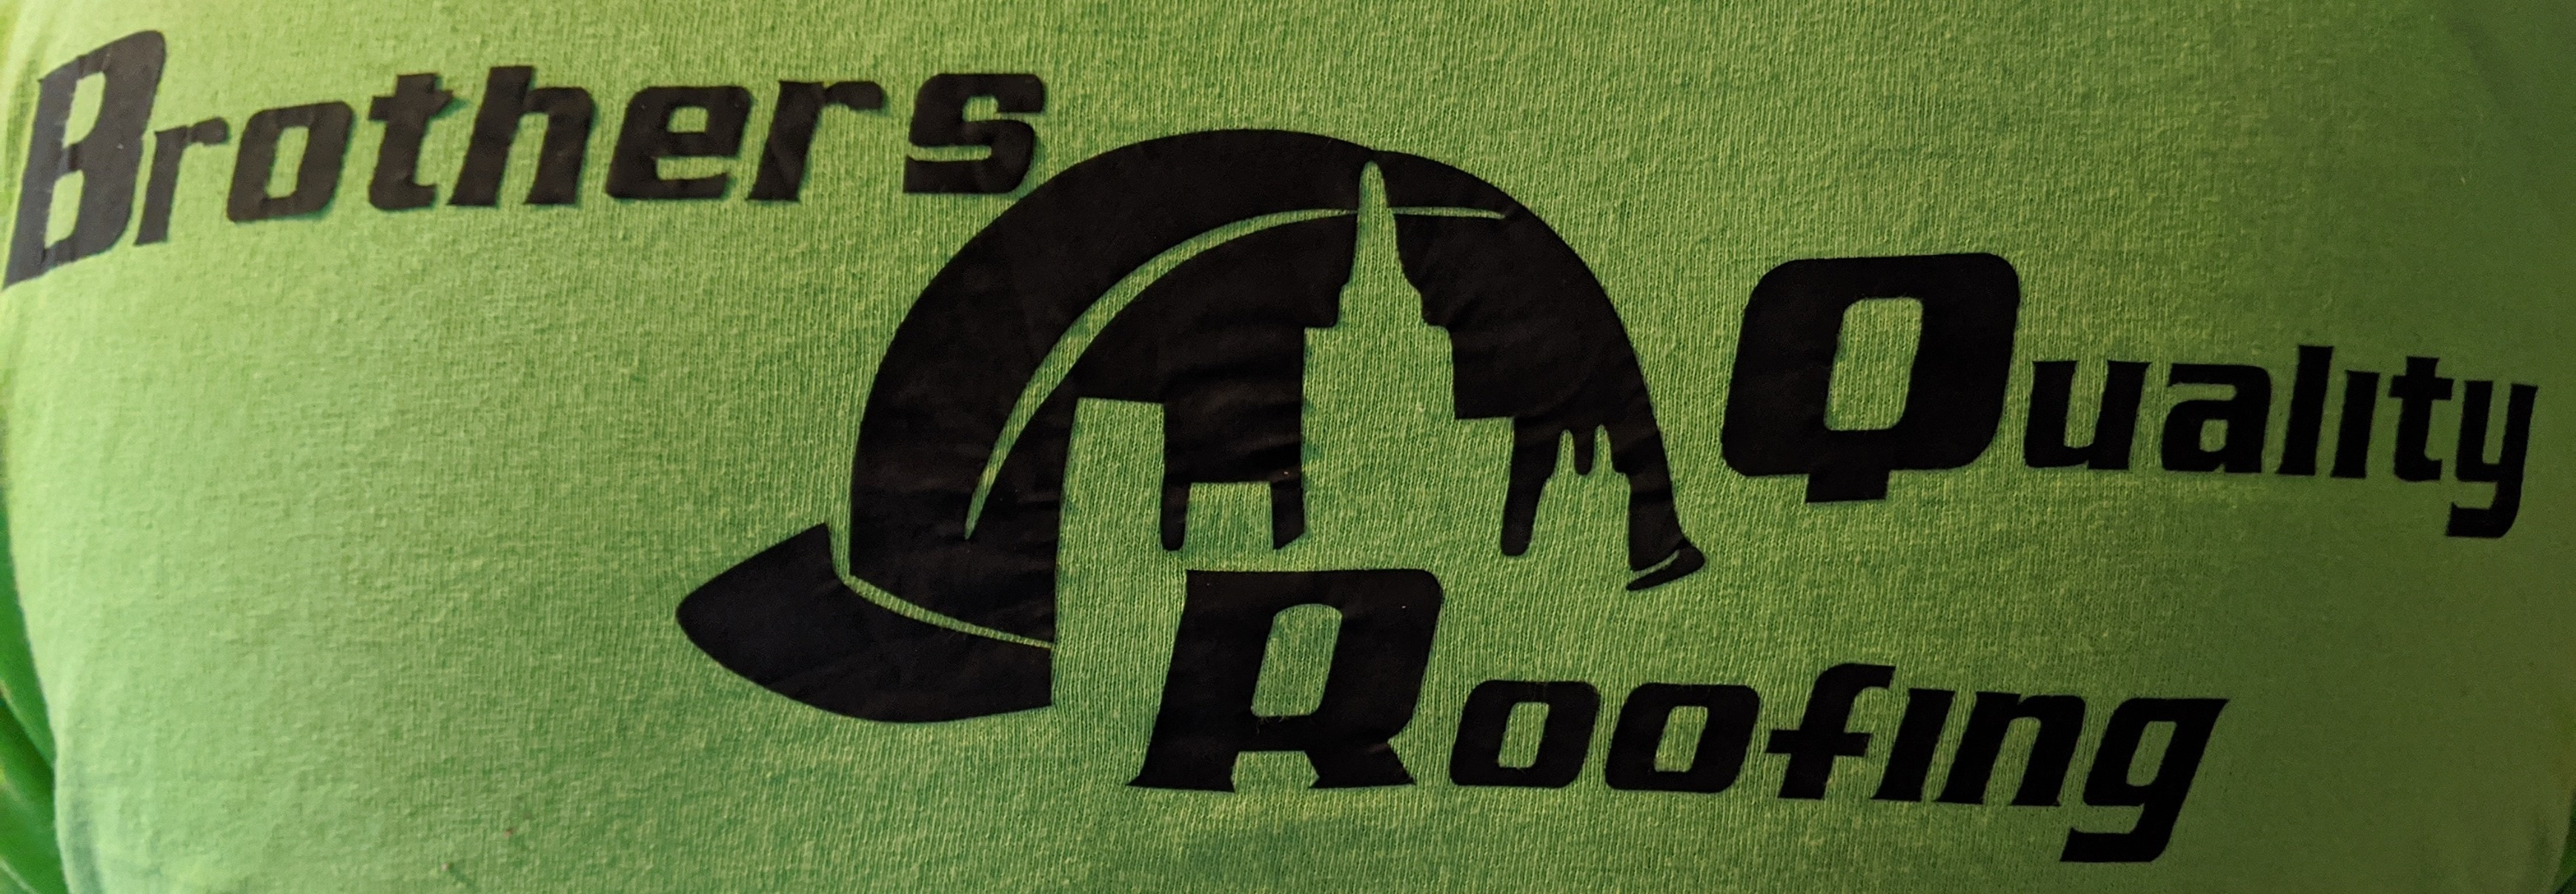 Brothers Quality Roofing logo